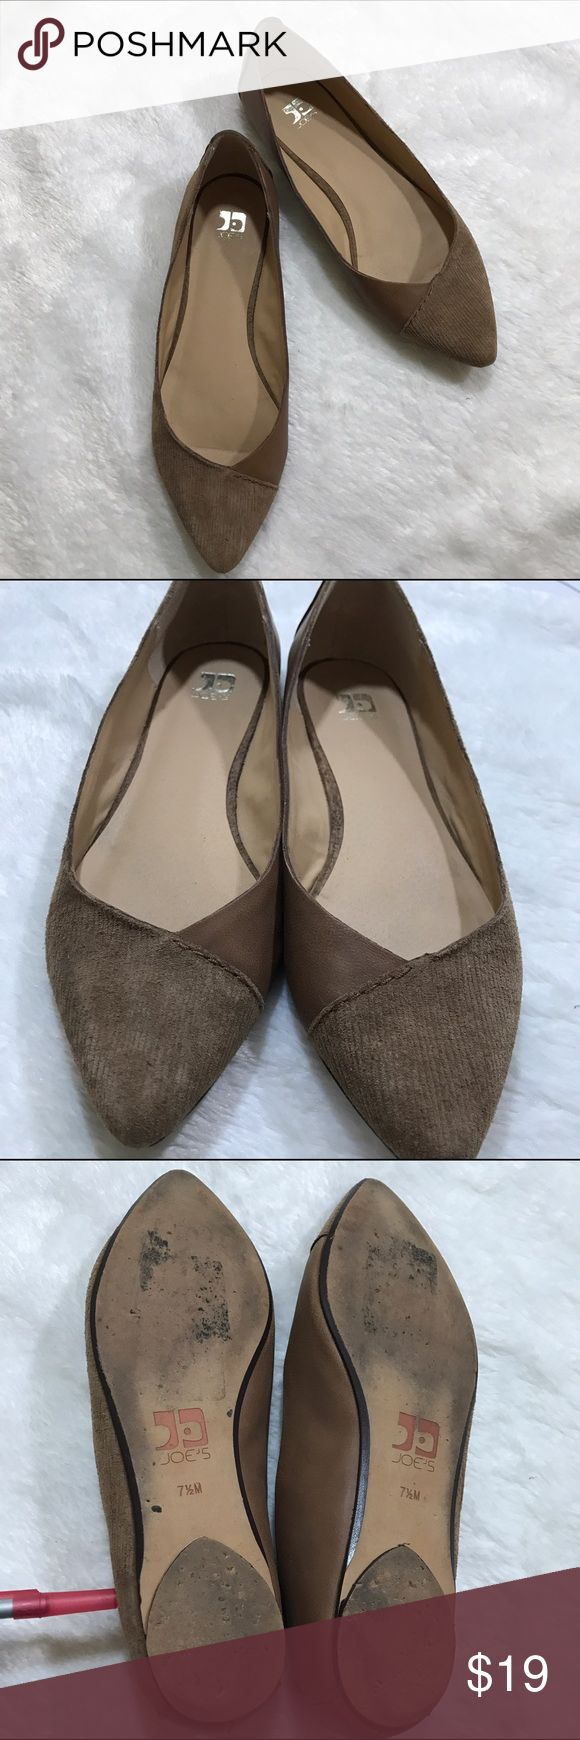 Joe's Azure Corduroy/Leather Brown Flats In ok condition, shows wear on toe fronts and bottom of the shoes shown on pictures. Joe's Shoes Flats & Loafers